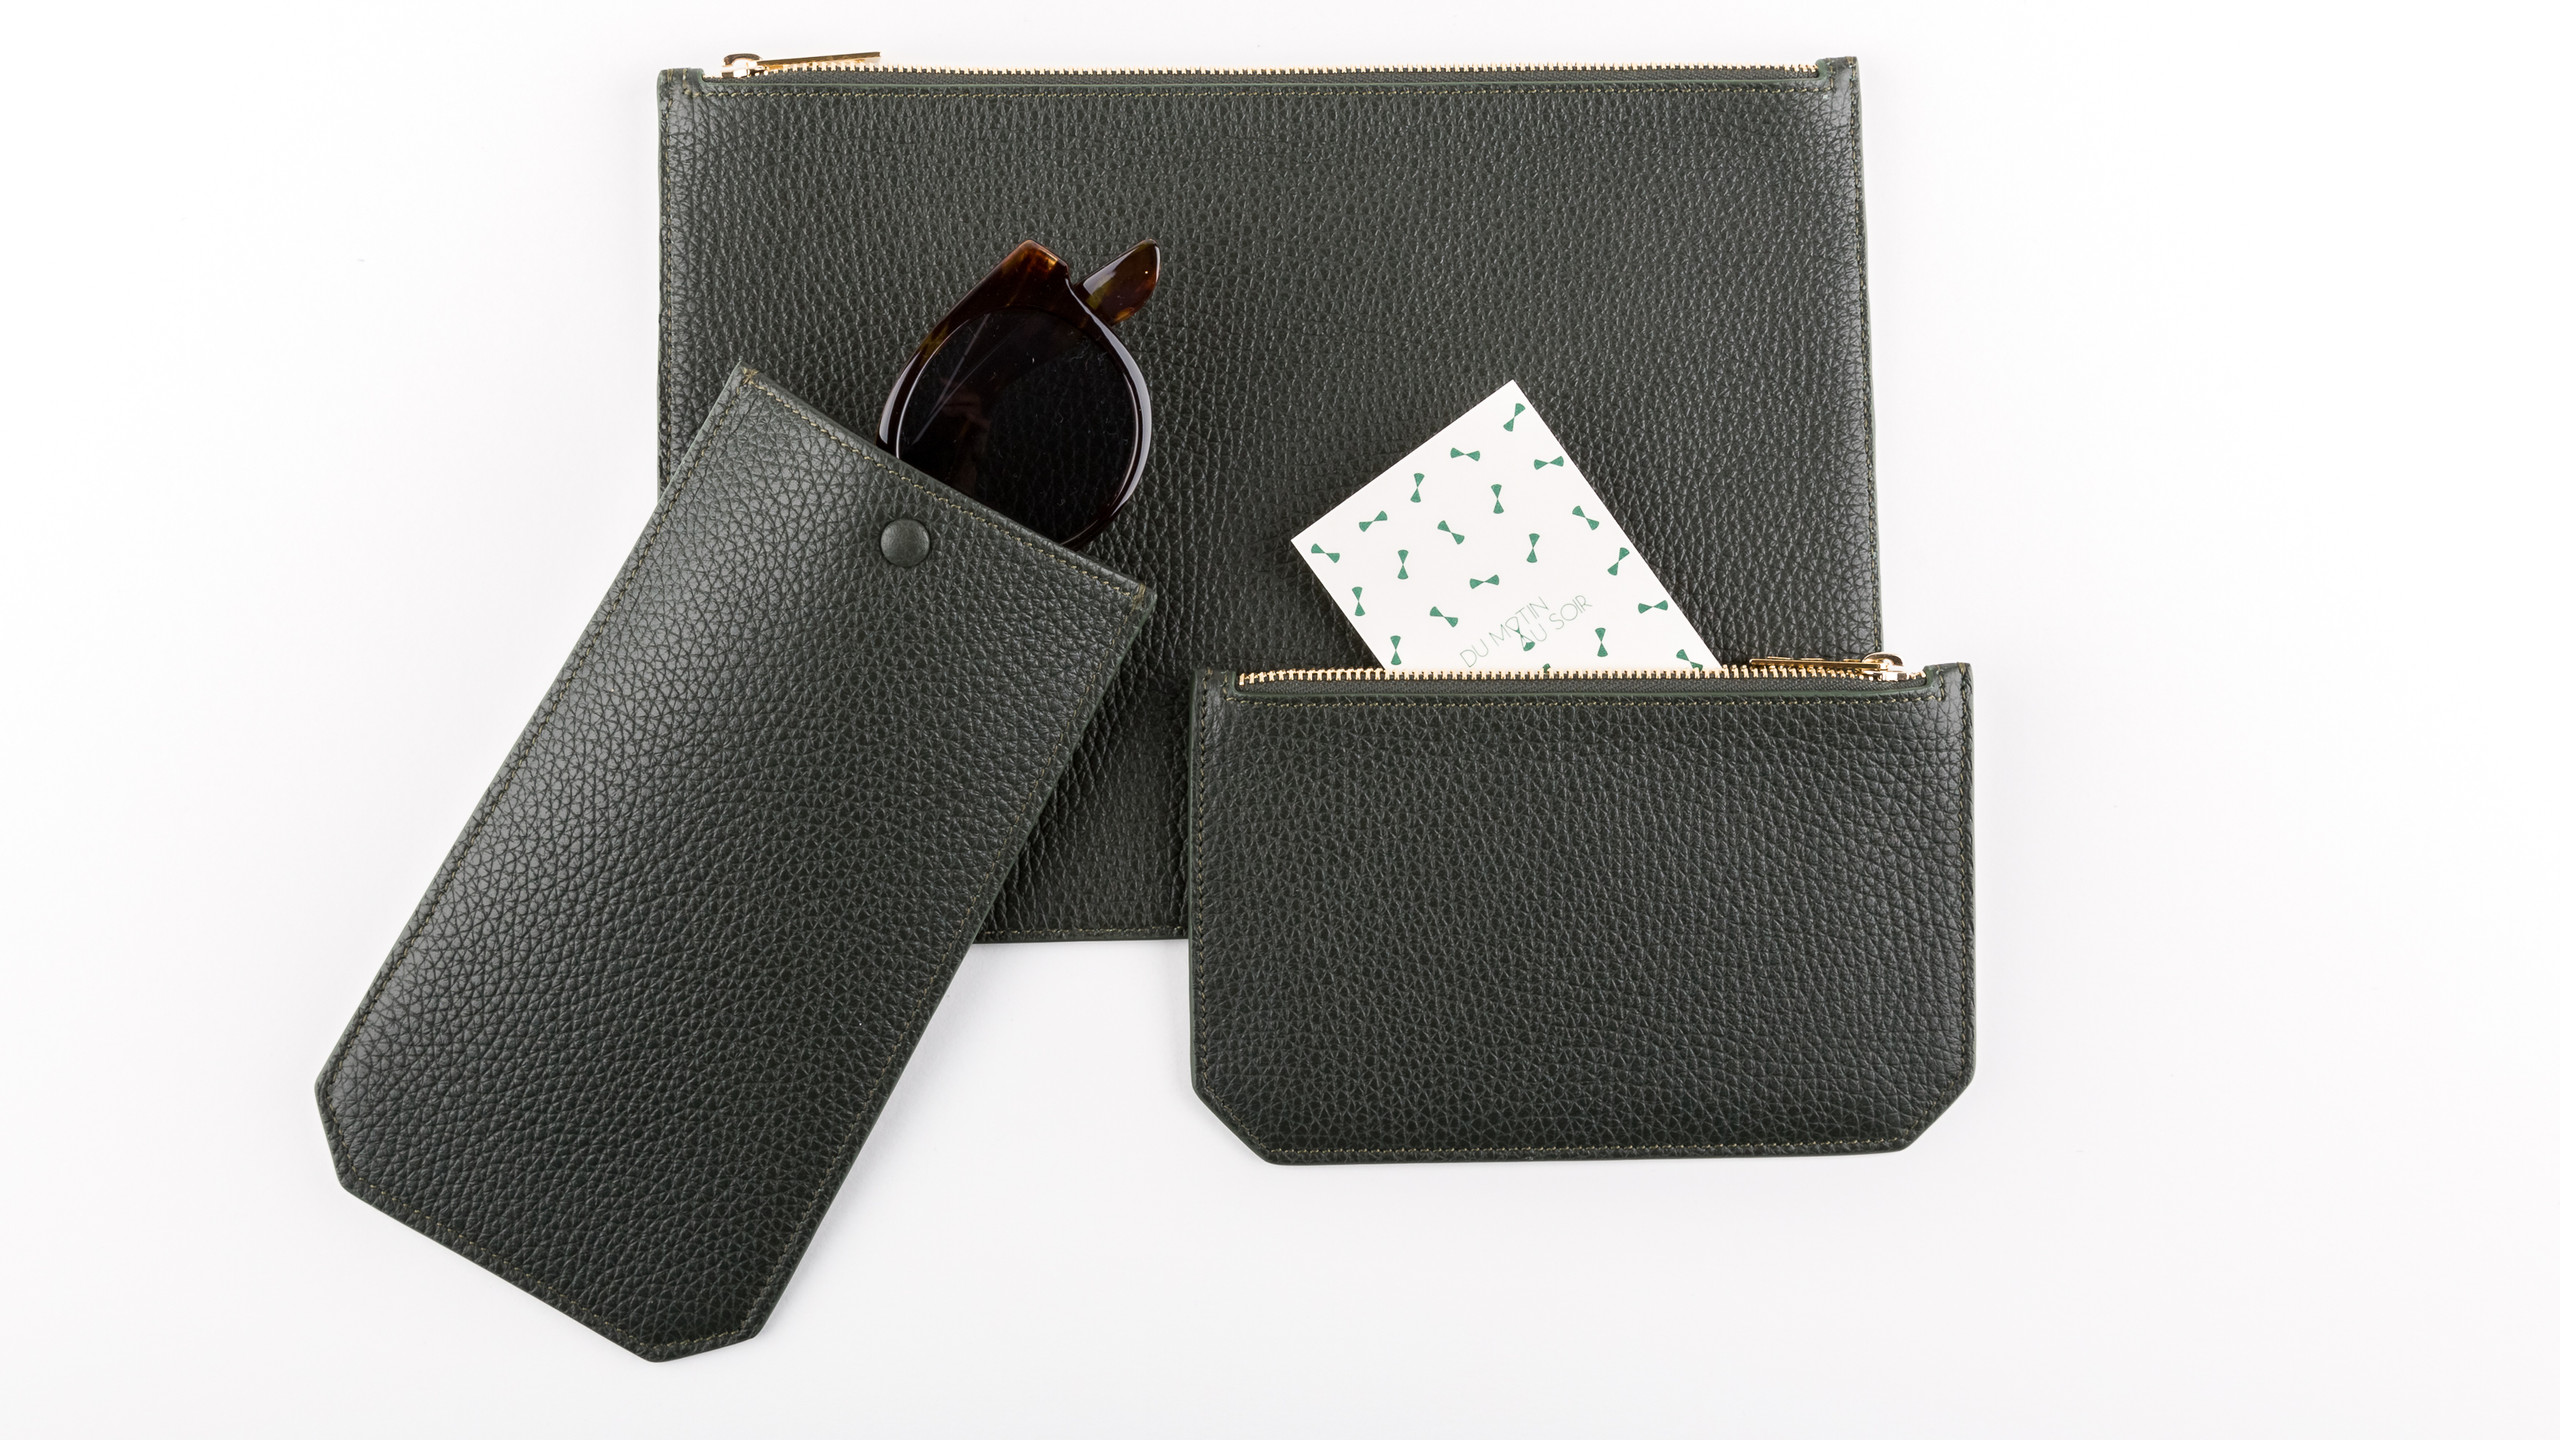 Pine green grained leather pouches